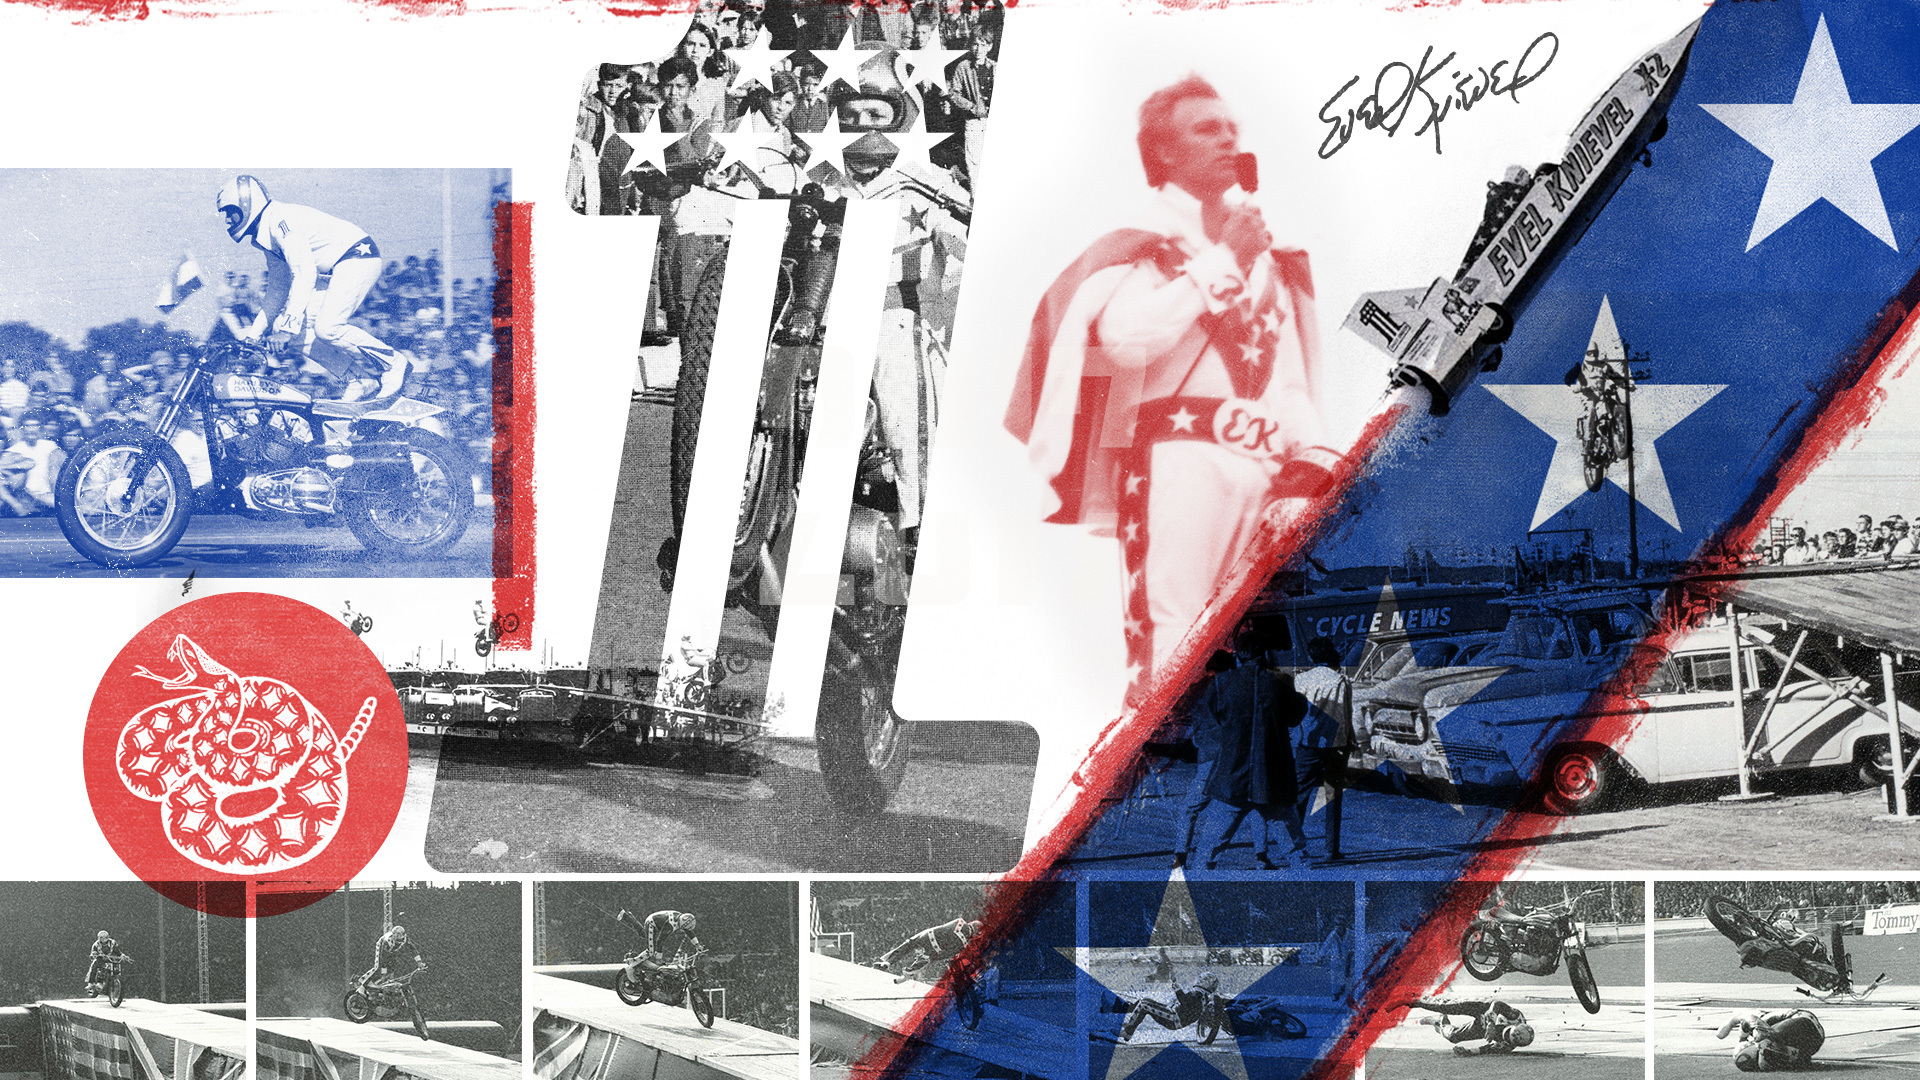 1920x1080 - Evel Knievel Wallpapers 14